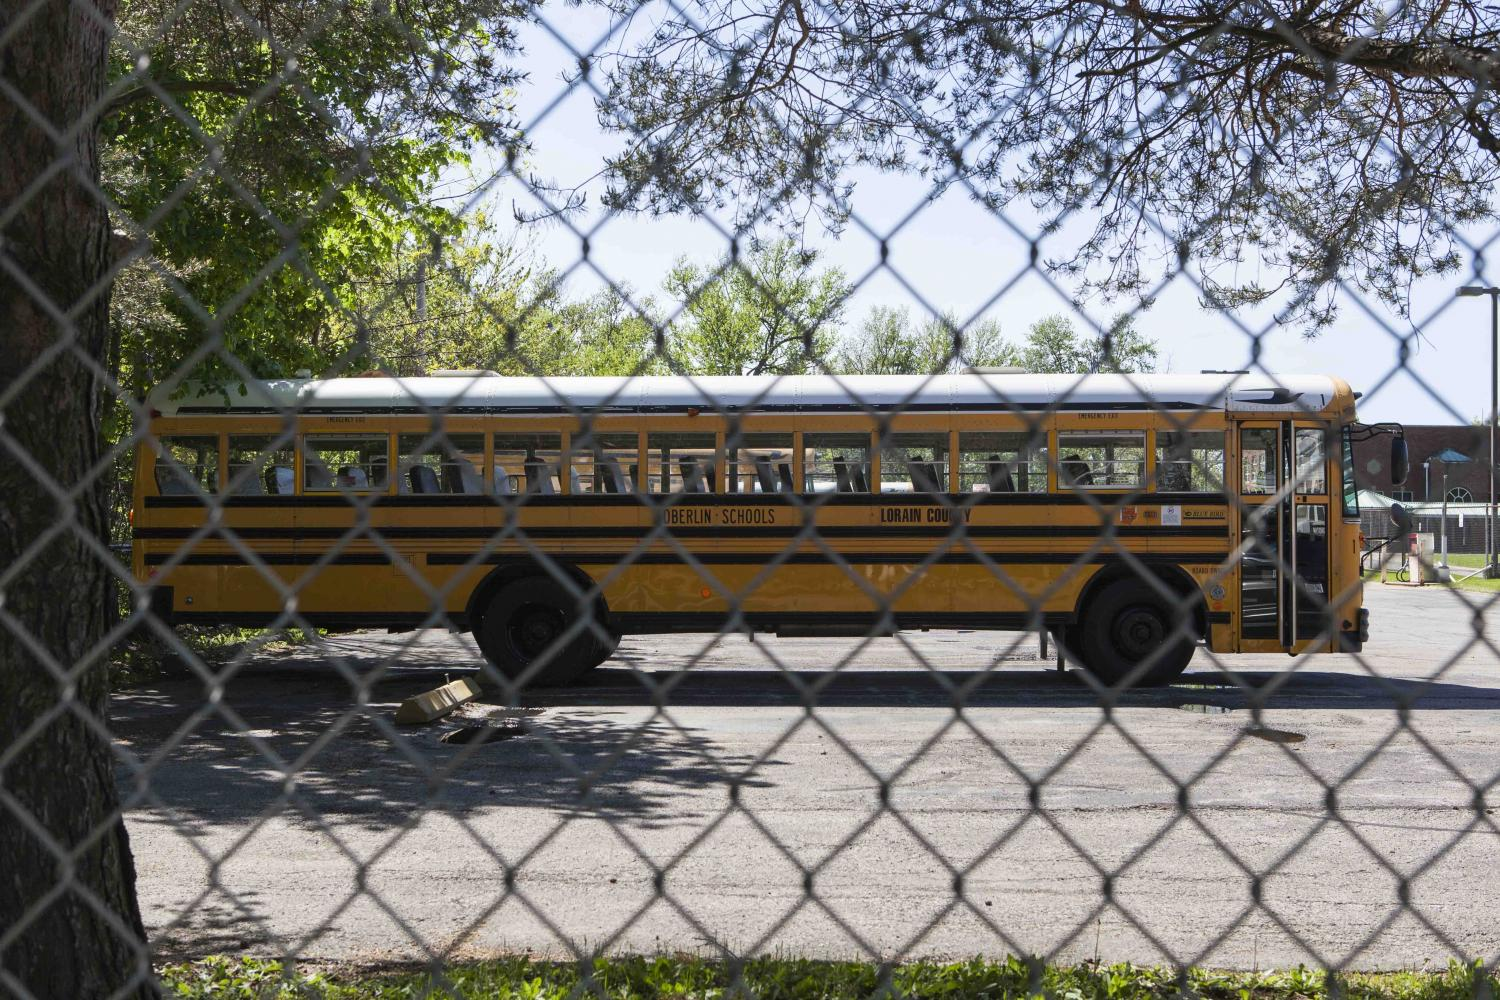 A bus parked outside of Langston Middle School. Local school parents accused the Oberlin School Board of spending an estimated excess of $1 million on school bus repairs over the past 10 years.